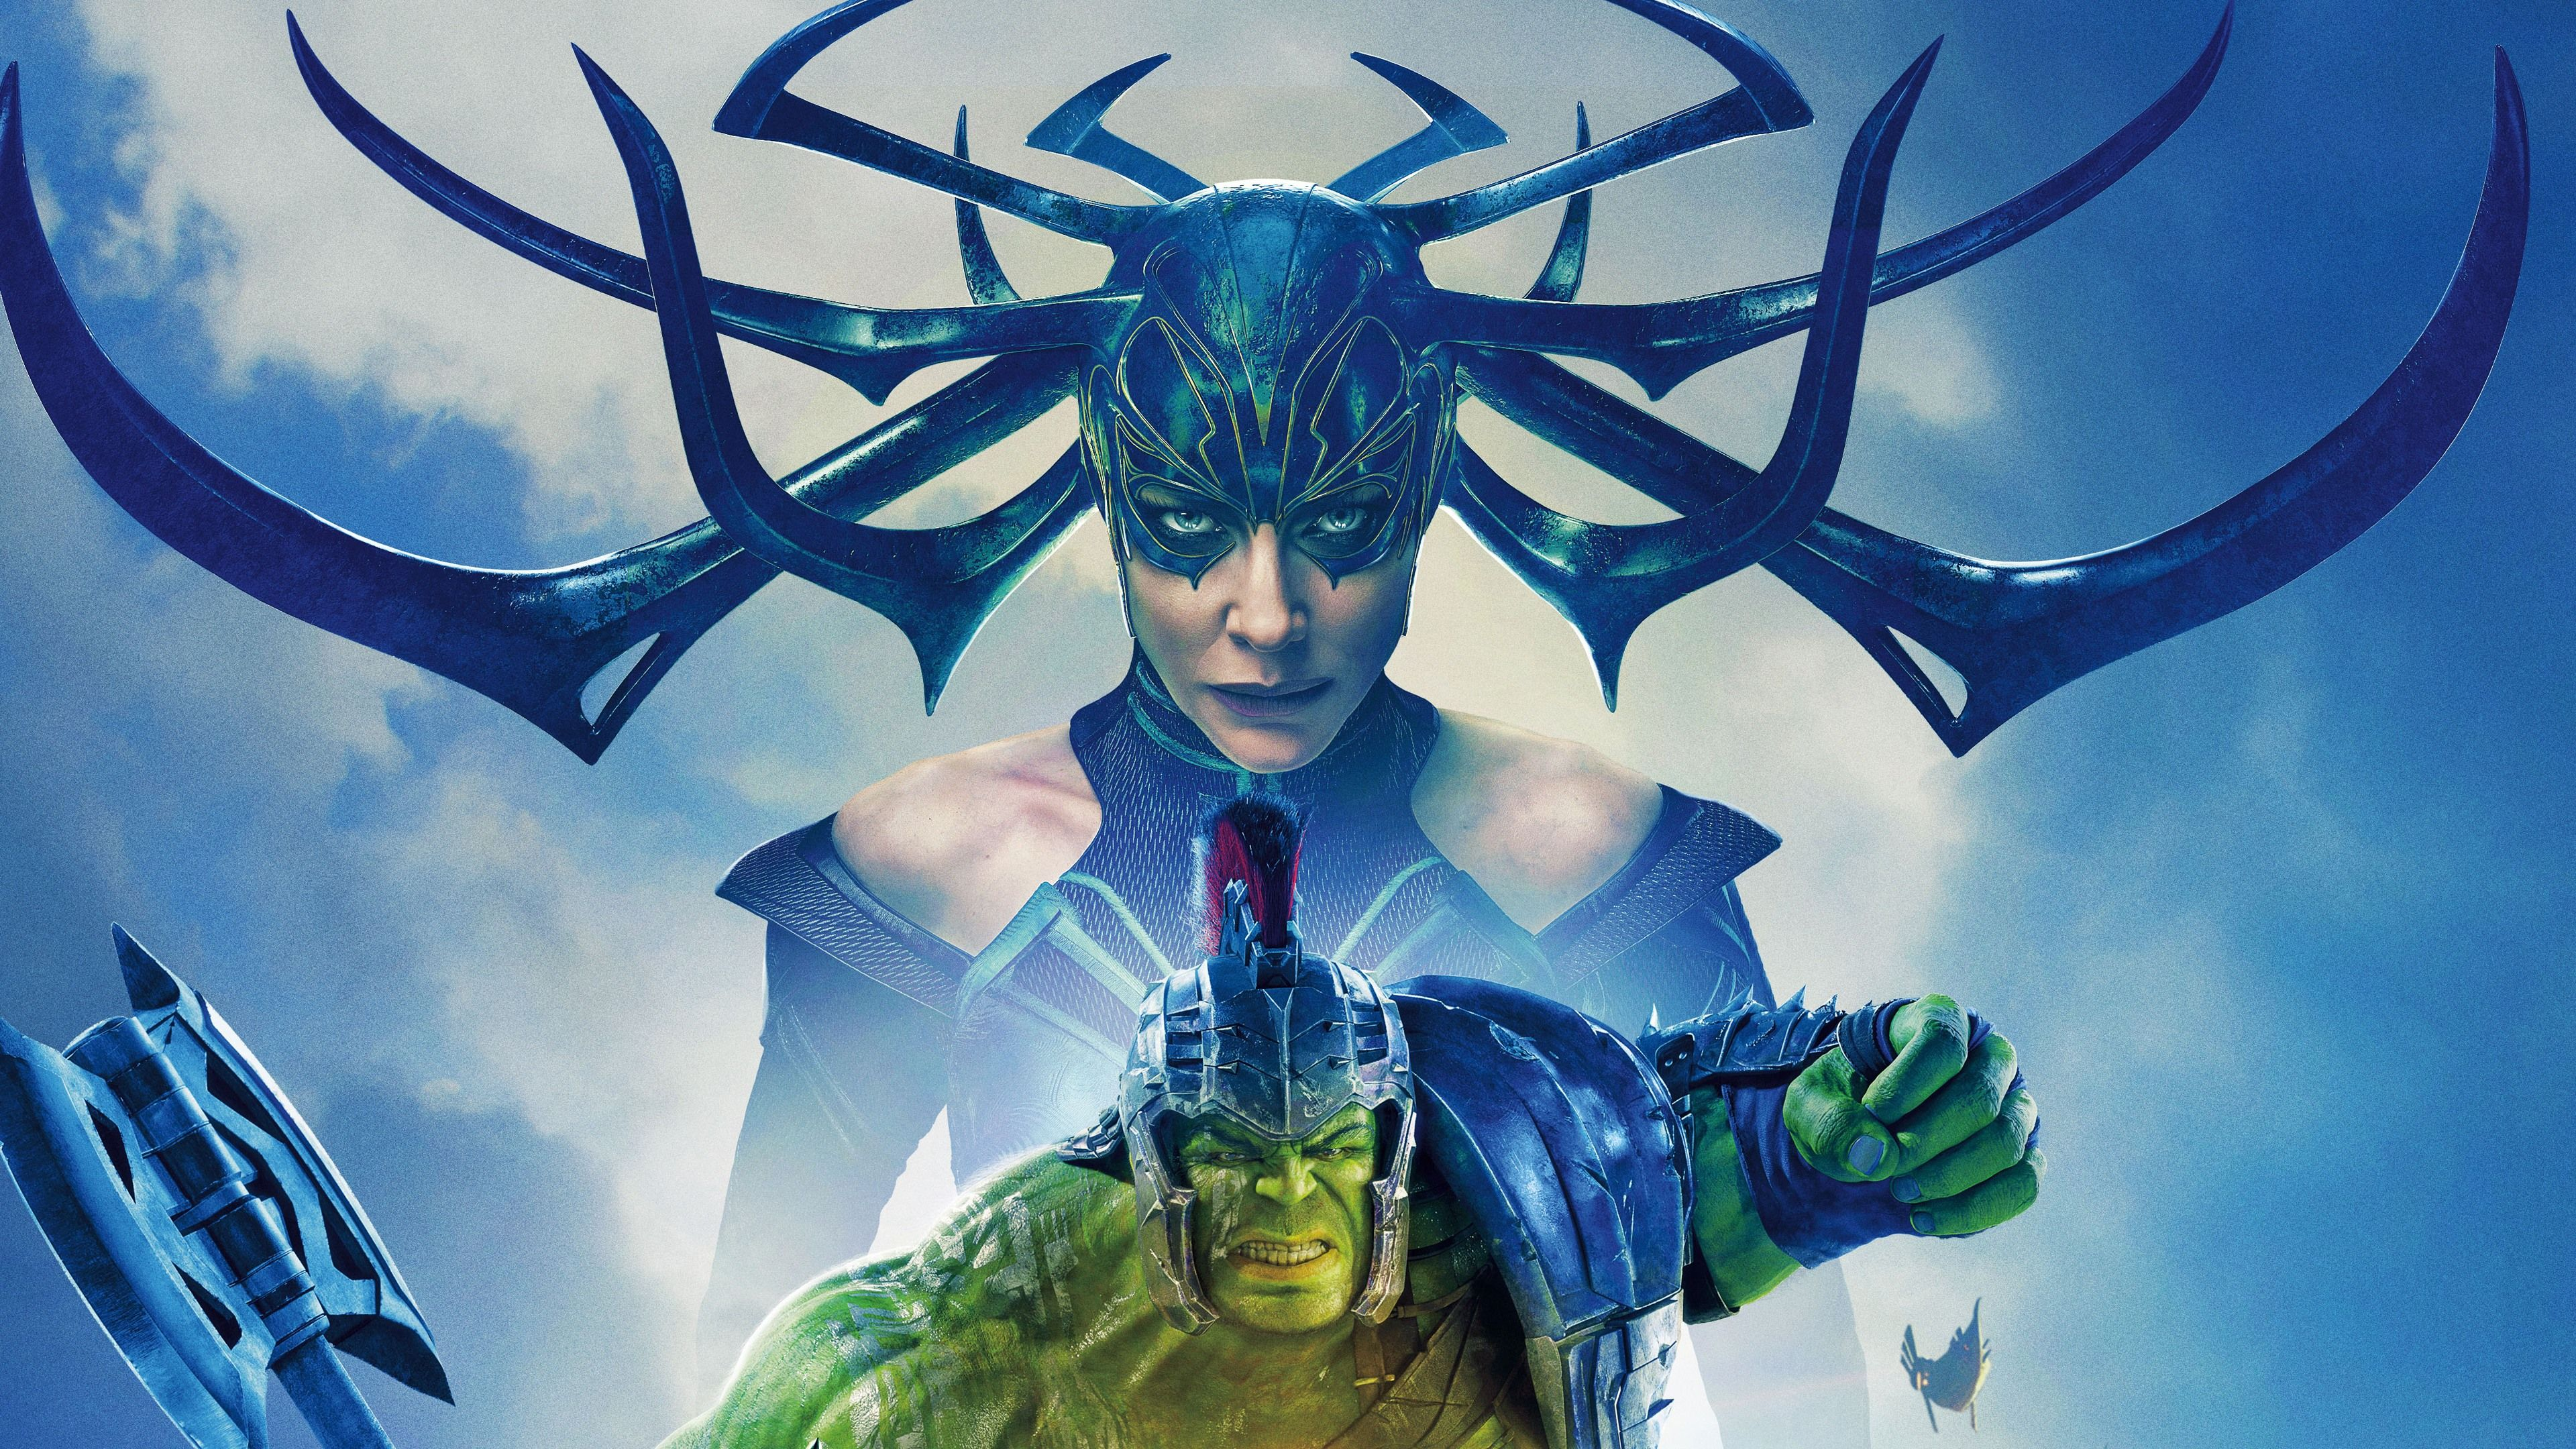 hulk hela in thor ragnarok 4k 1548526583 - Hulk Hela In Thor Ragnarok 4k - thor ragnarok wallpapers, superheroes wallpapers, hulk wallpapers, hela wallpapers, hd-wallpapers, 4k-wallpapers